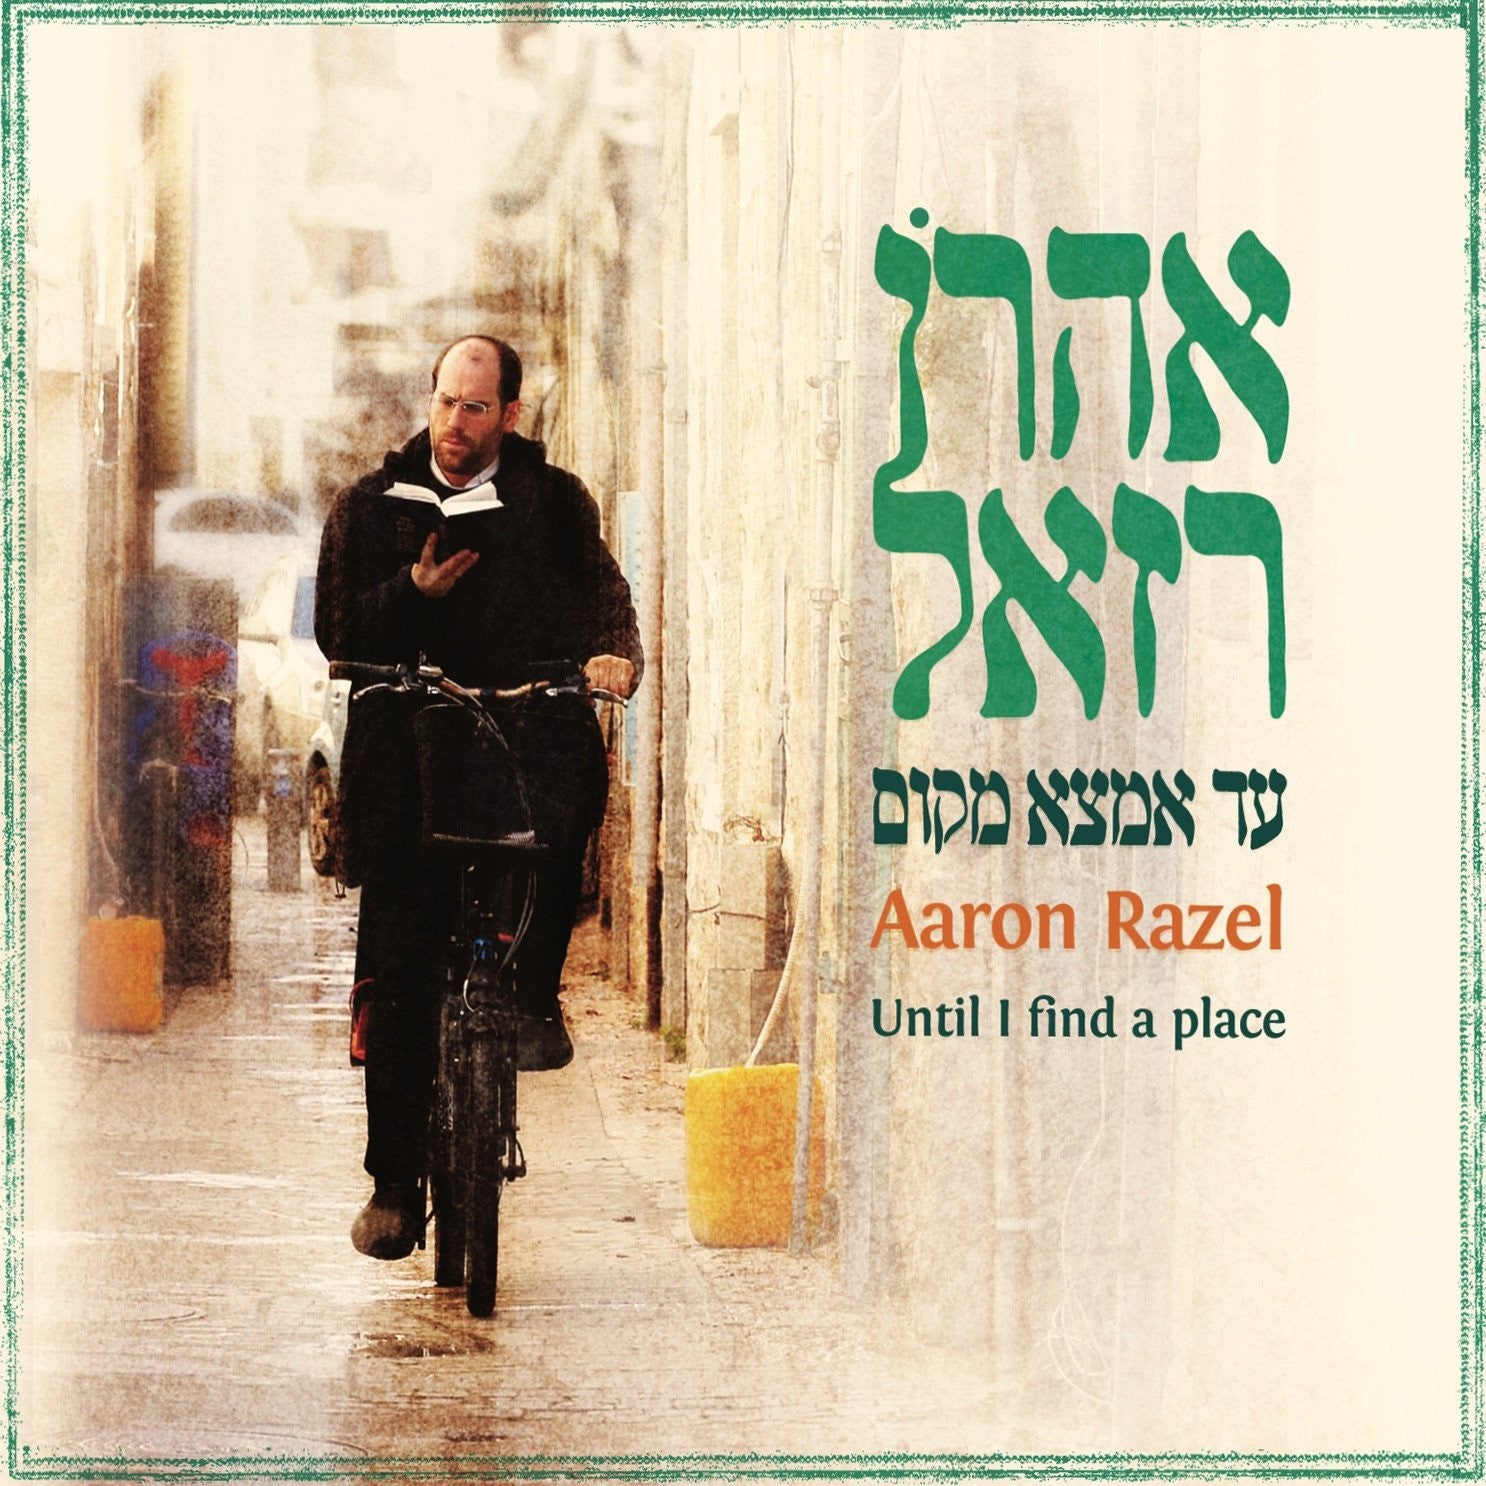 Aaron Razel - Until I find A place